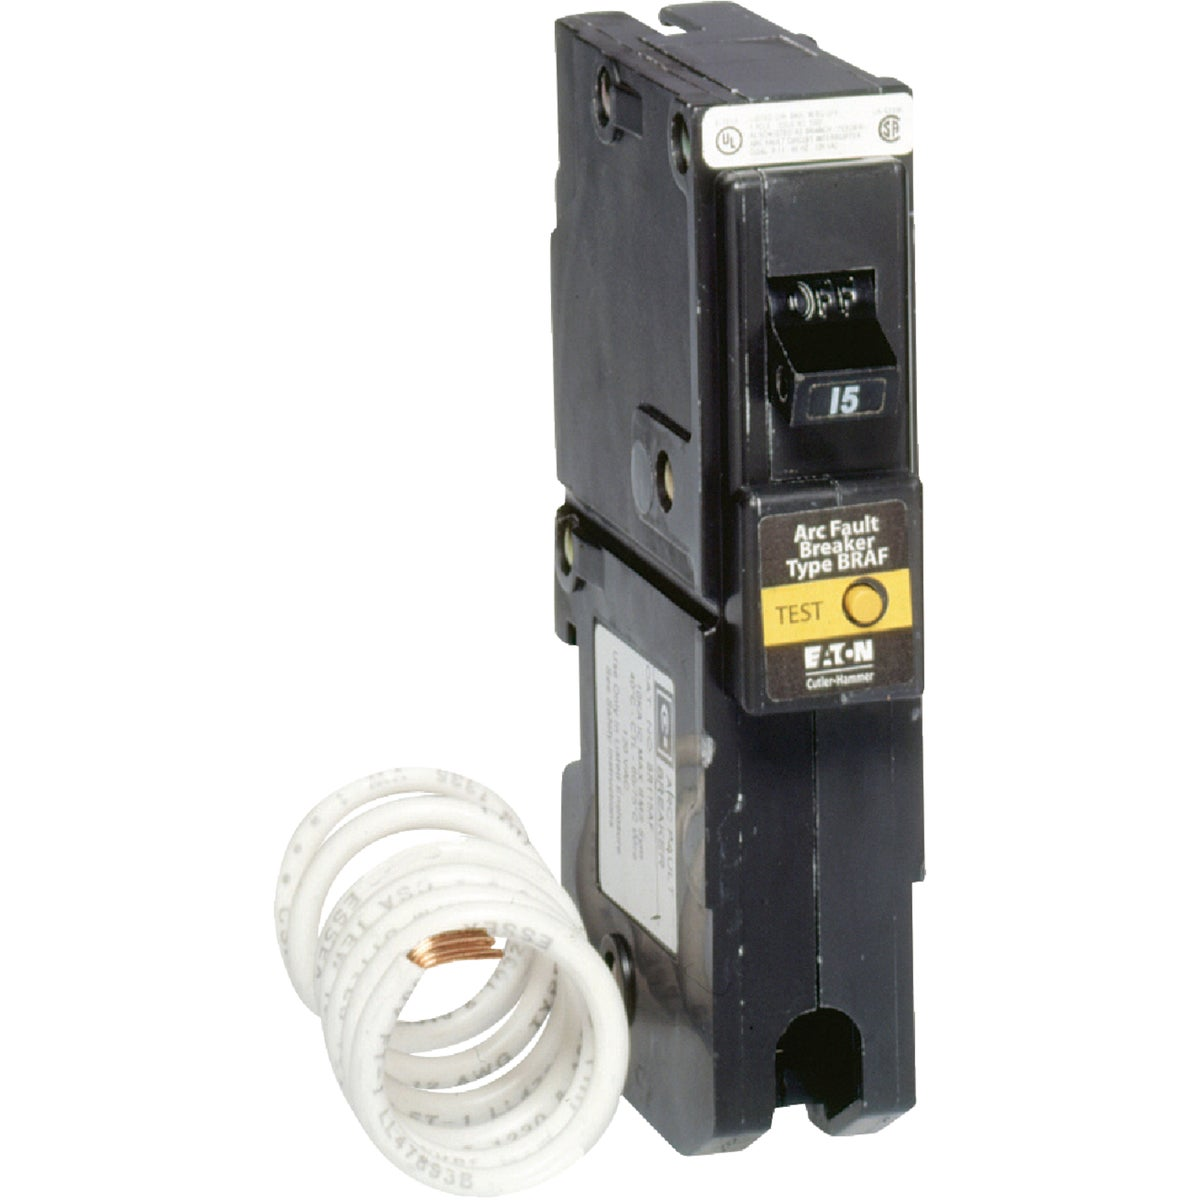 15A AFCI CIRCUIT BREAKER - BRCAF115 by Eaton Corporation